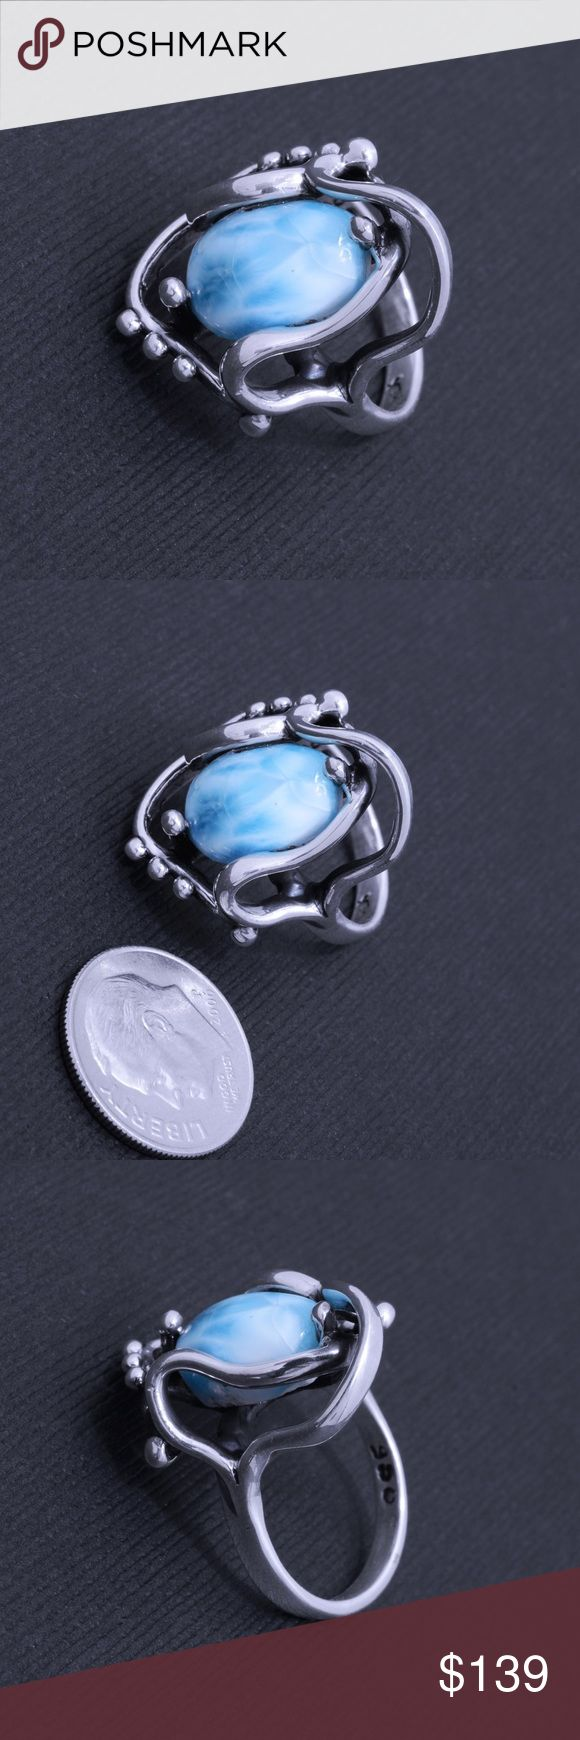 """950 Sterling & Larimar Ring Stamped """"950"""". Higher sterling finesse.  This is not a stock photo. The image is of the actual article that is being sold  Sterling silver is an alloy of silver containing 92.5% by mass of silver and 7.5% by mass of other metals, usually copper. The sterling silver standard has a minimum millesimal fineness of 925.  All my jewelry is solid sterling silver. I do not plate.   Hand crafted in Taxco, Mexico.  Will ship within 2 days of order. Jewelry Rings"""